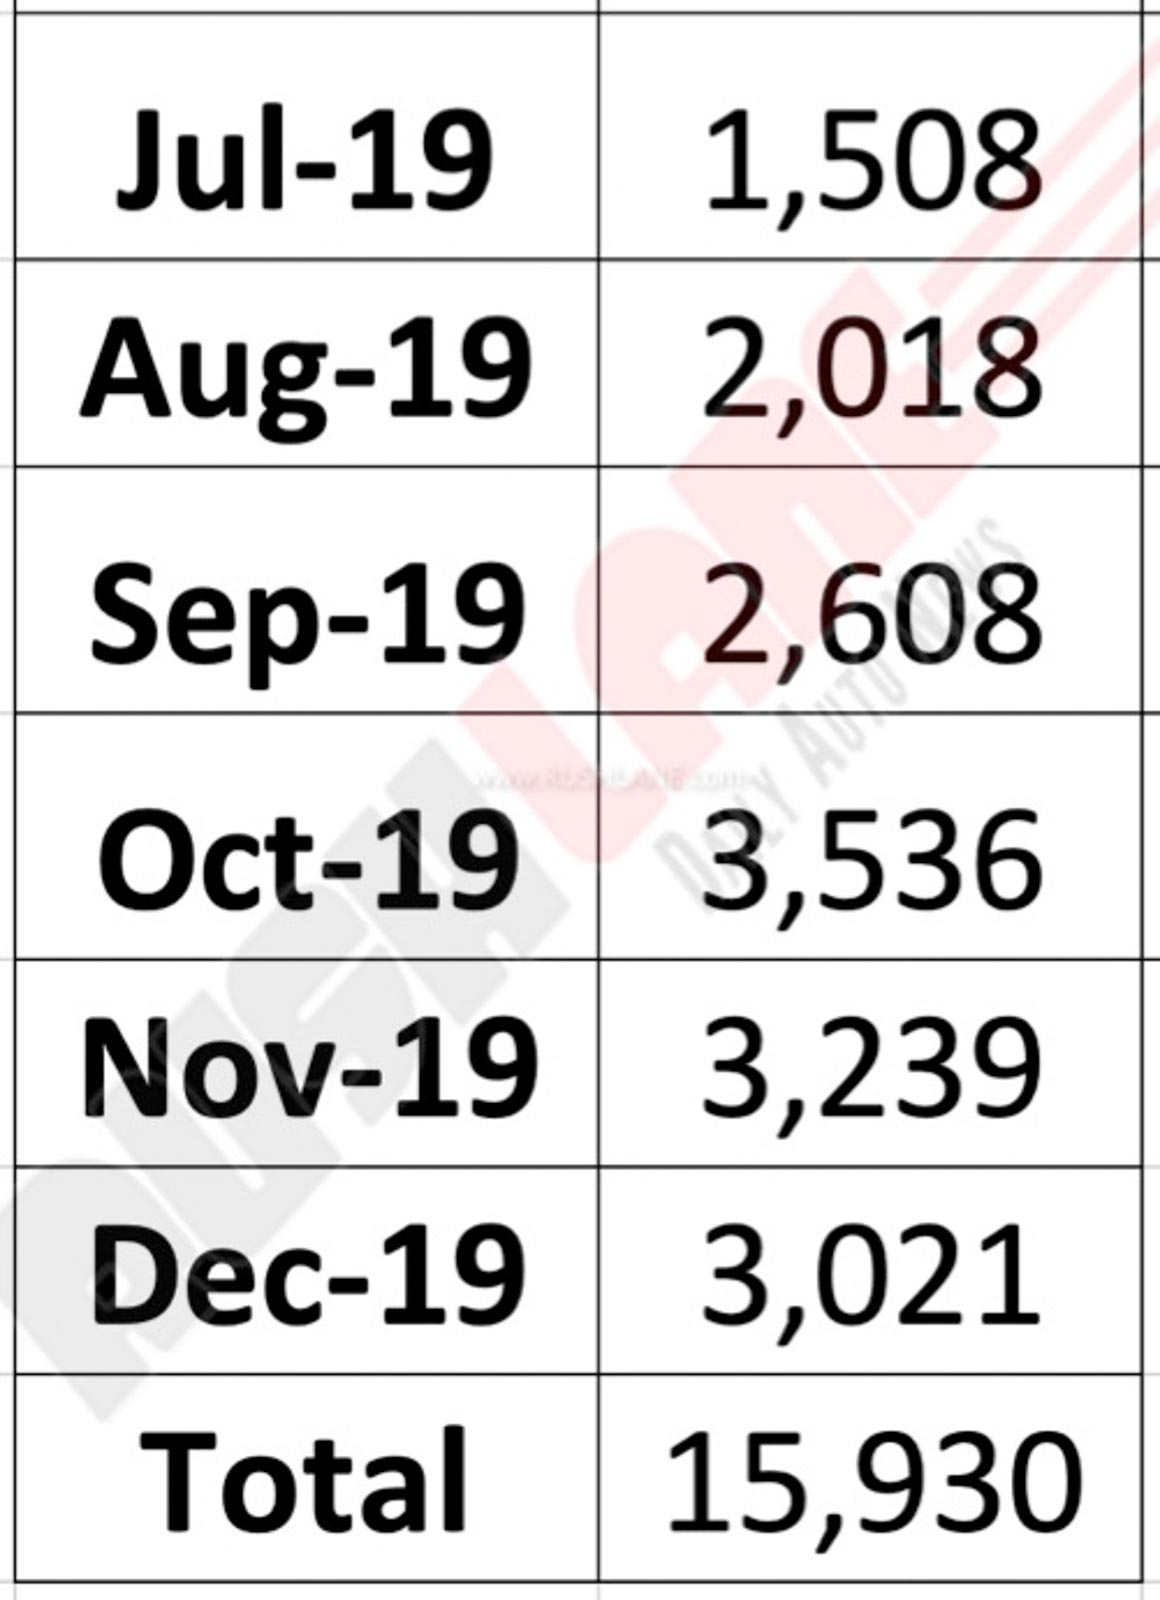 MG Hector sales in 2019